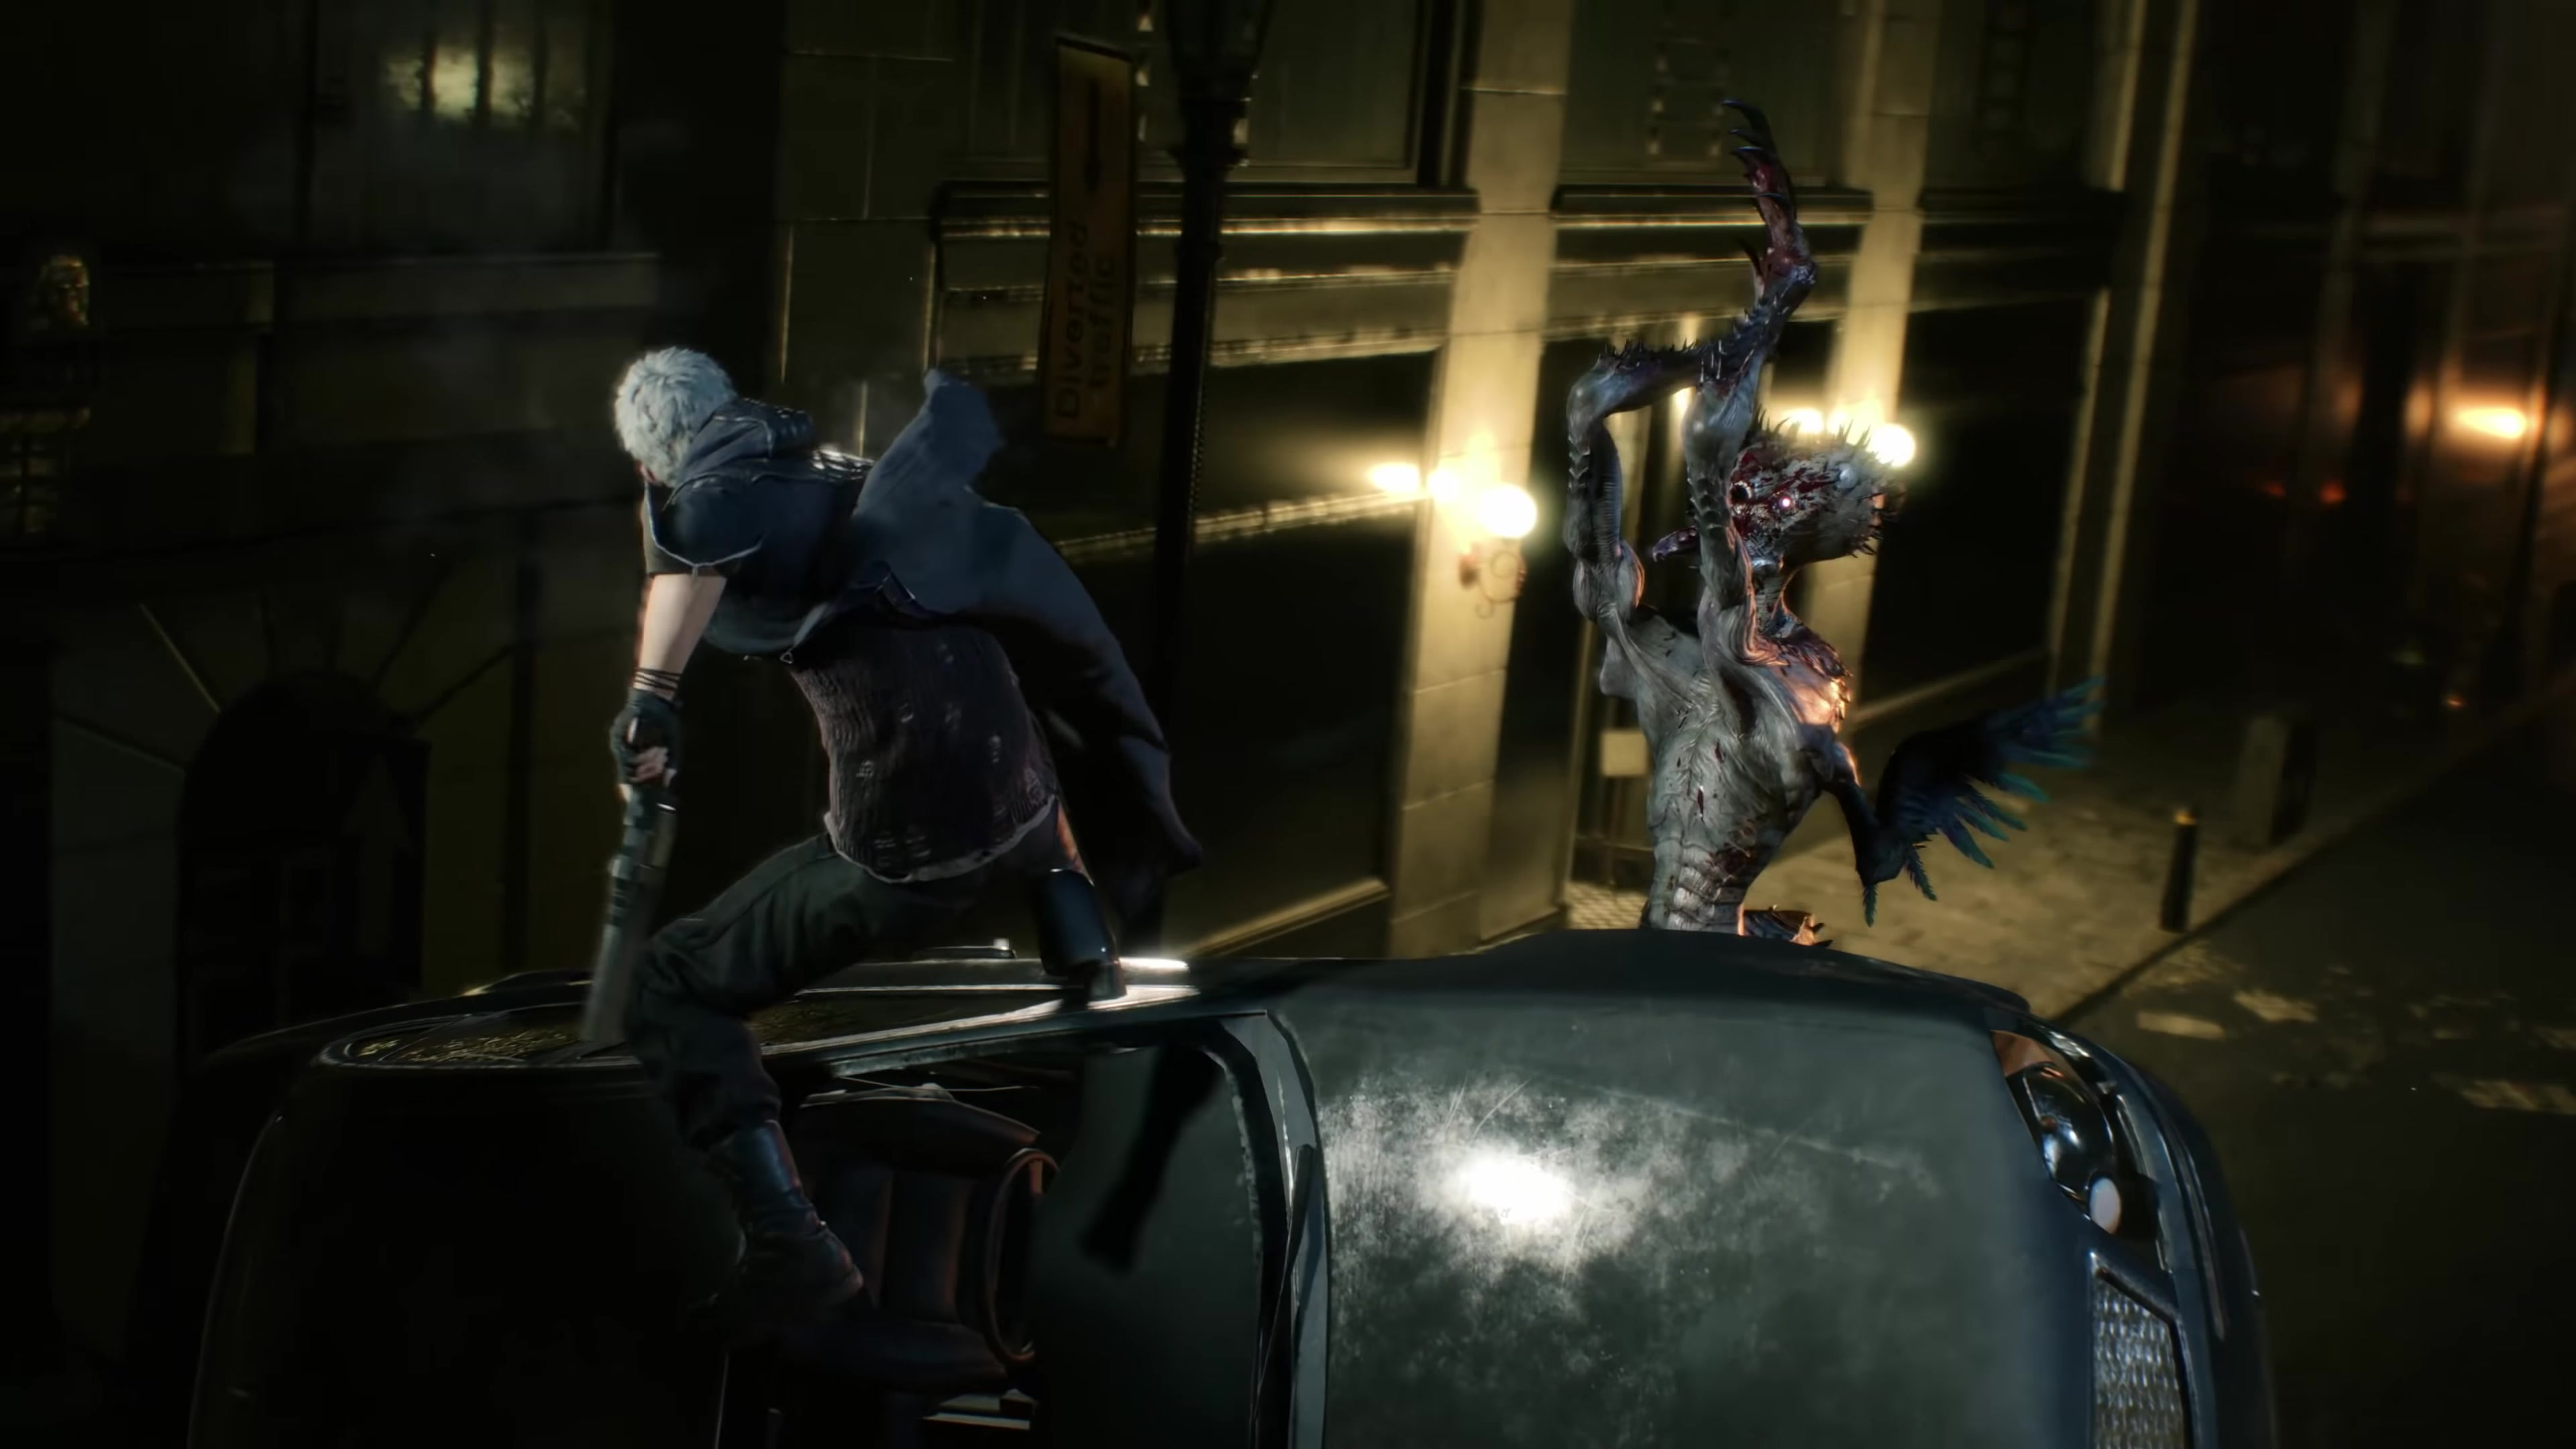 Devil May Cry 5 064.jpg - Devil May Cry 5